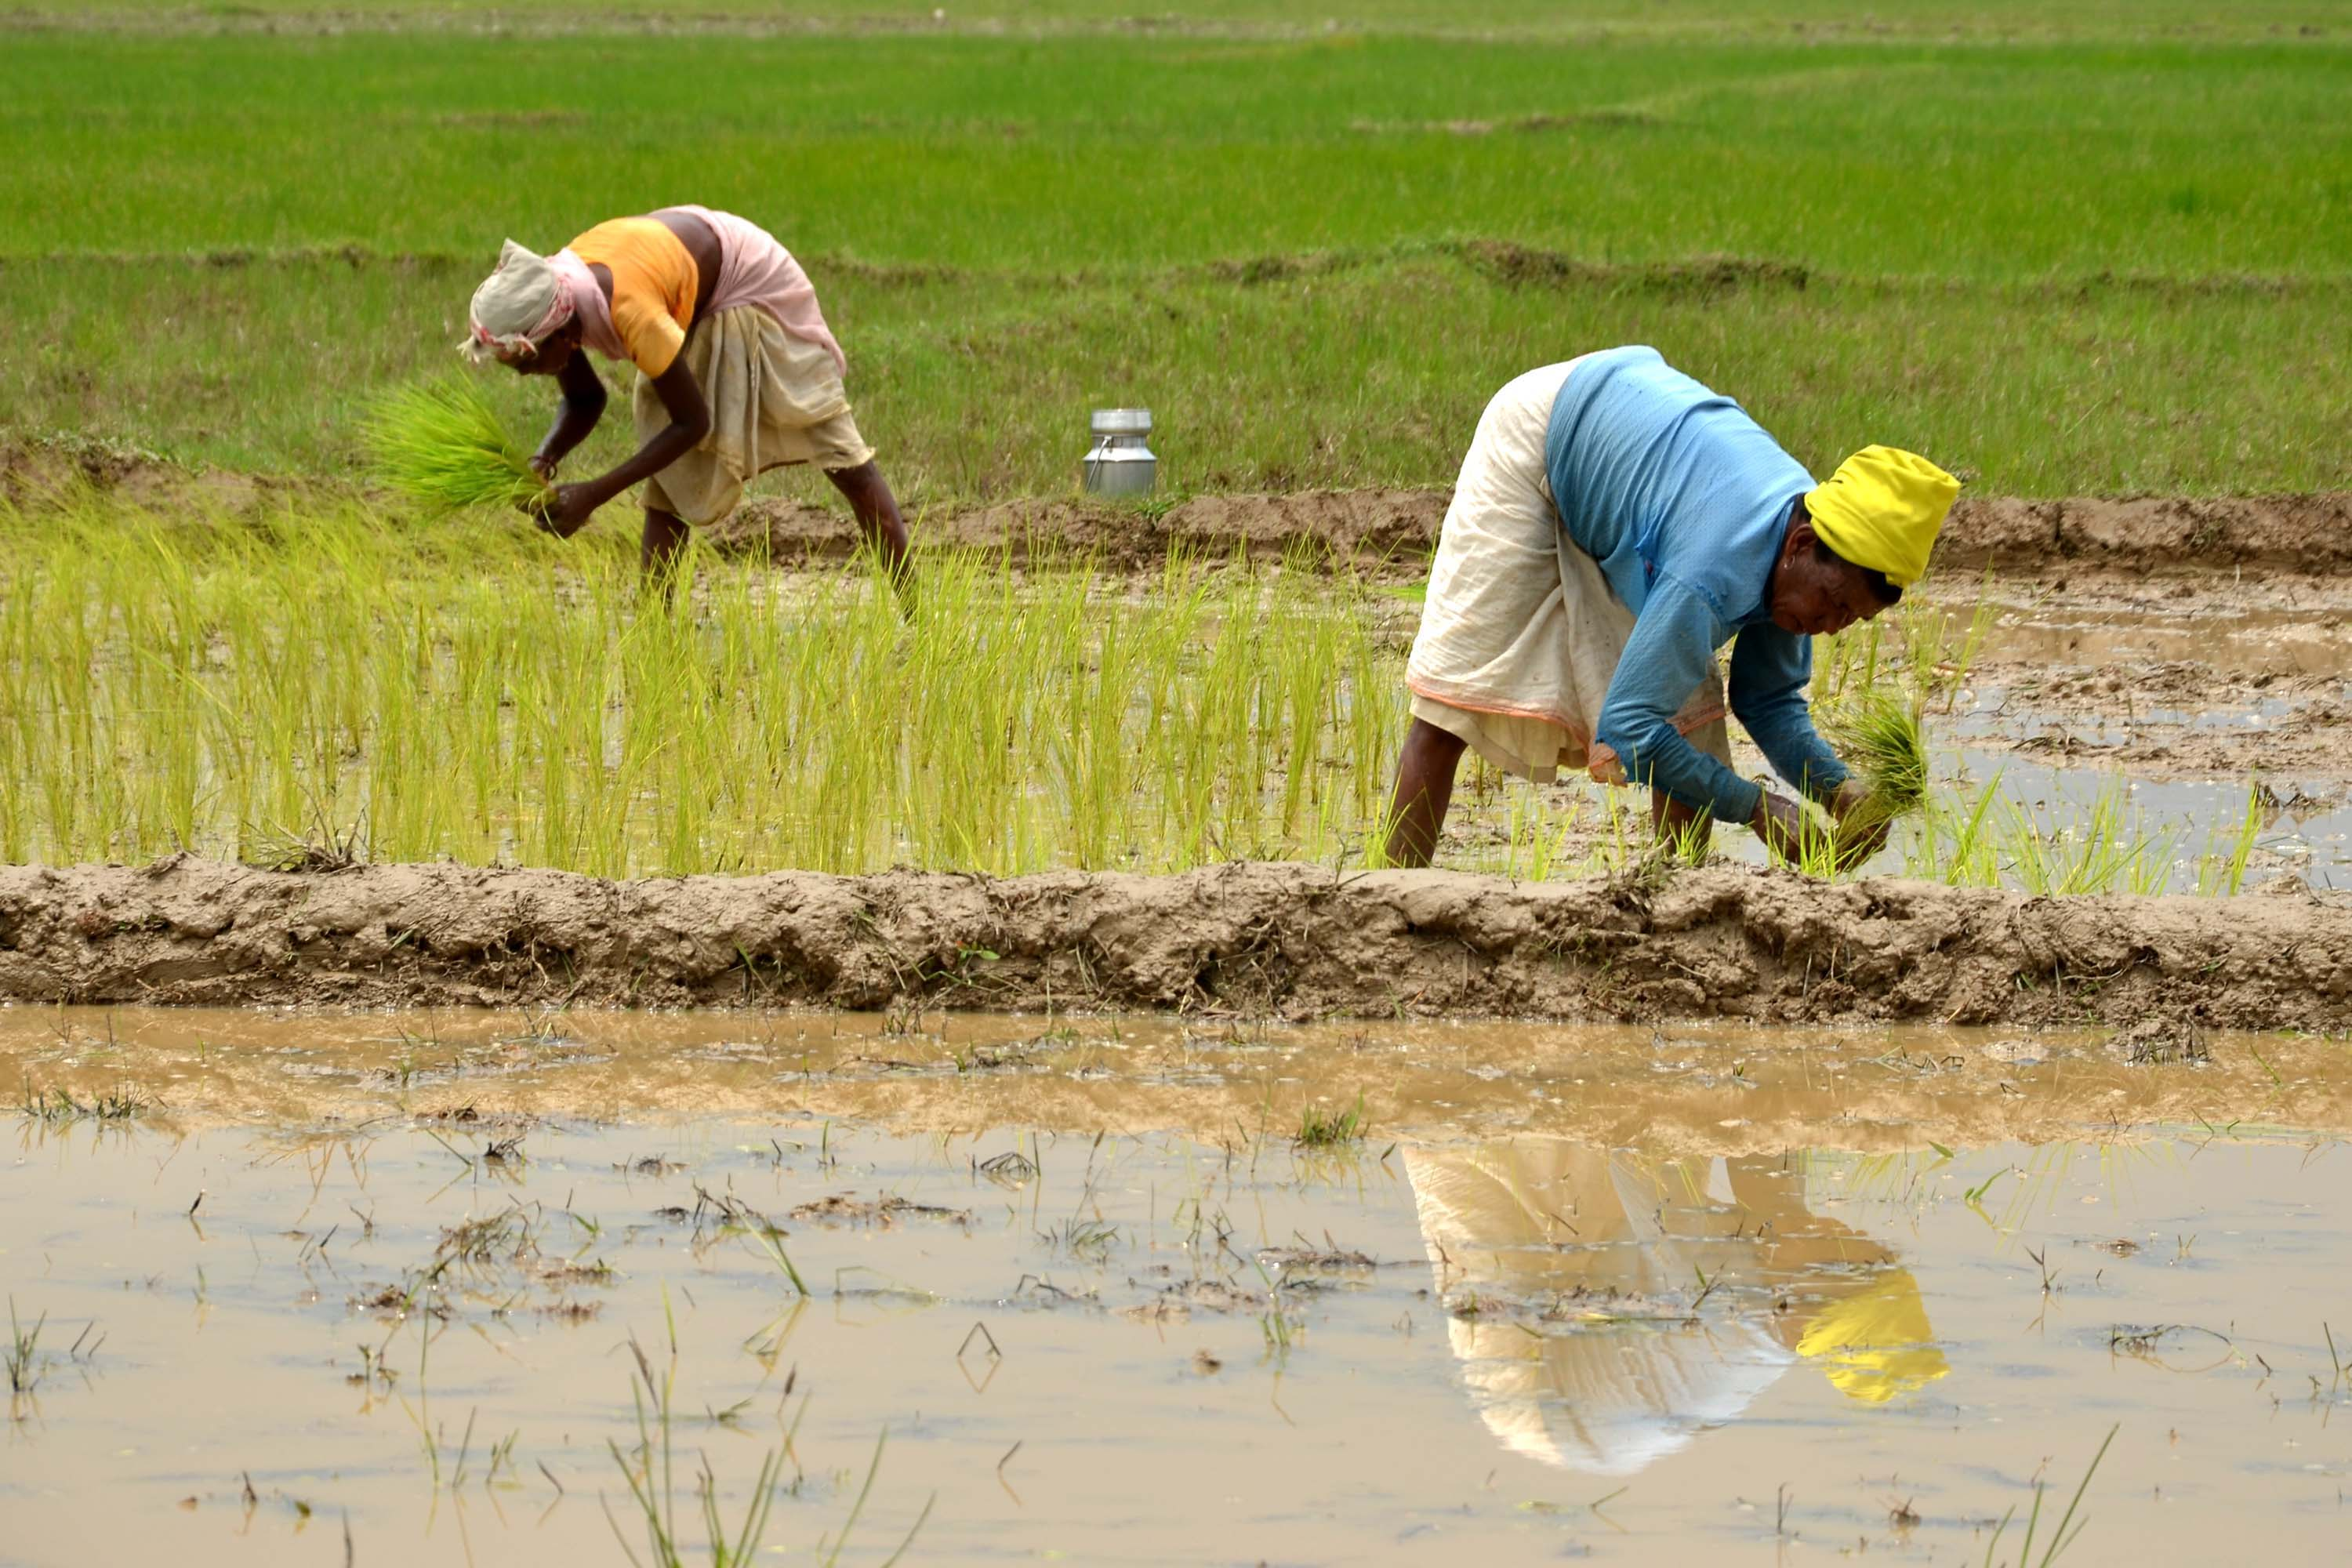 Indian villagers plant rice seedlings in a paddy field at